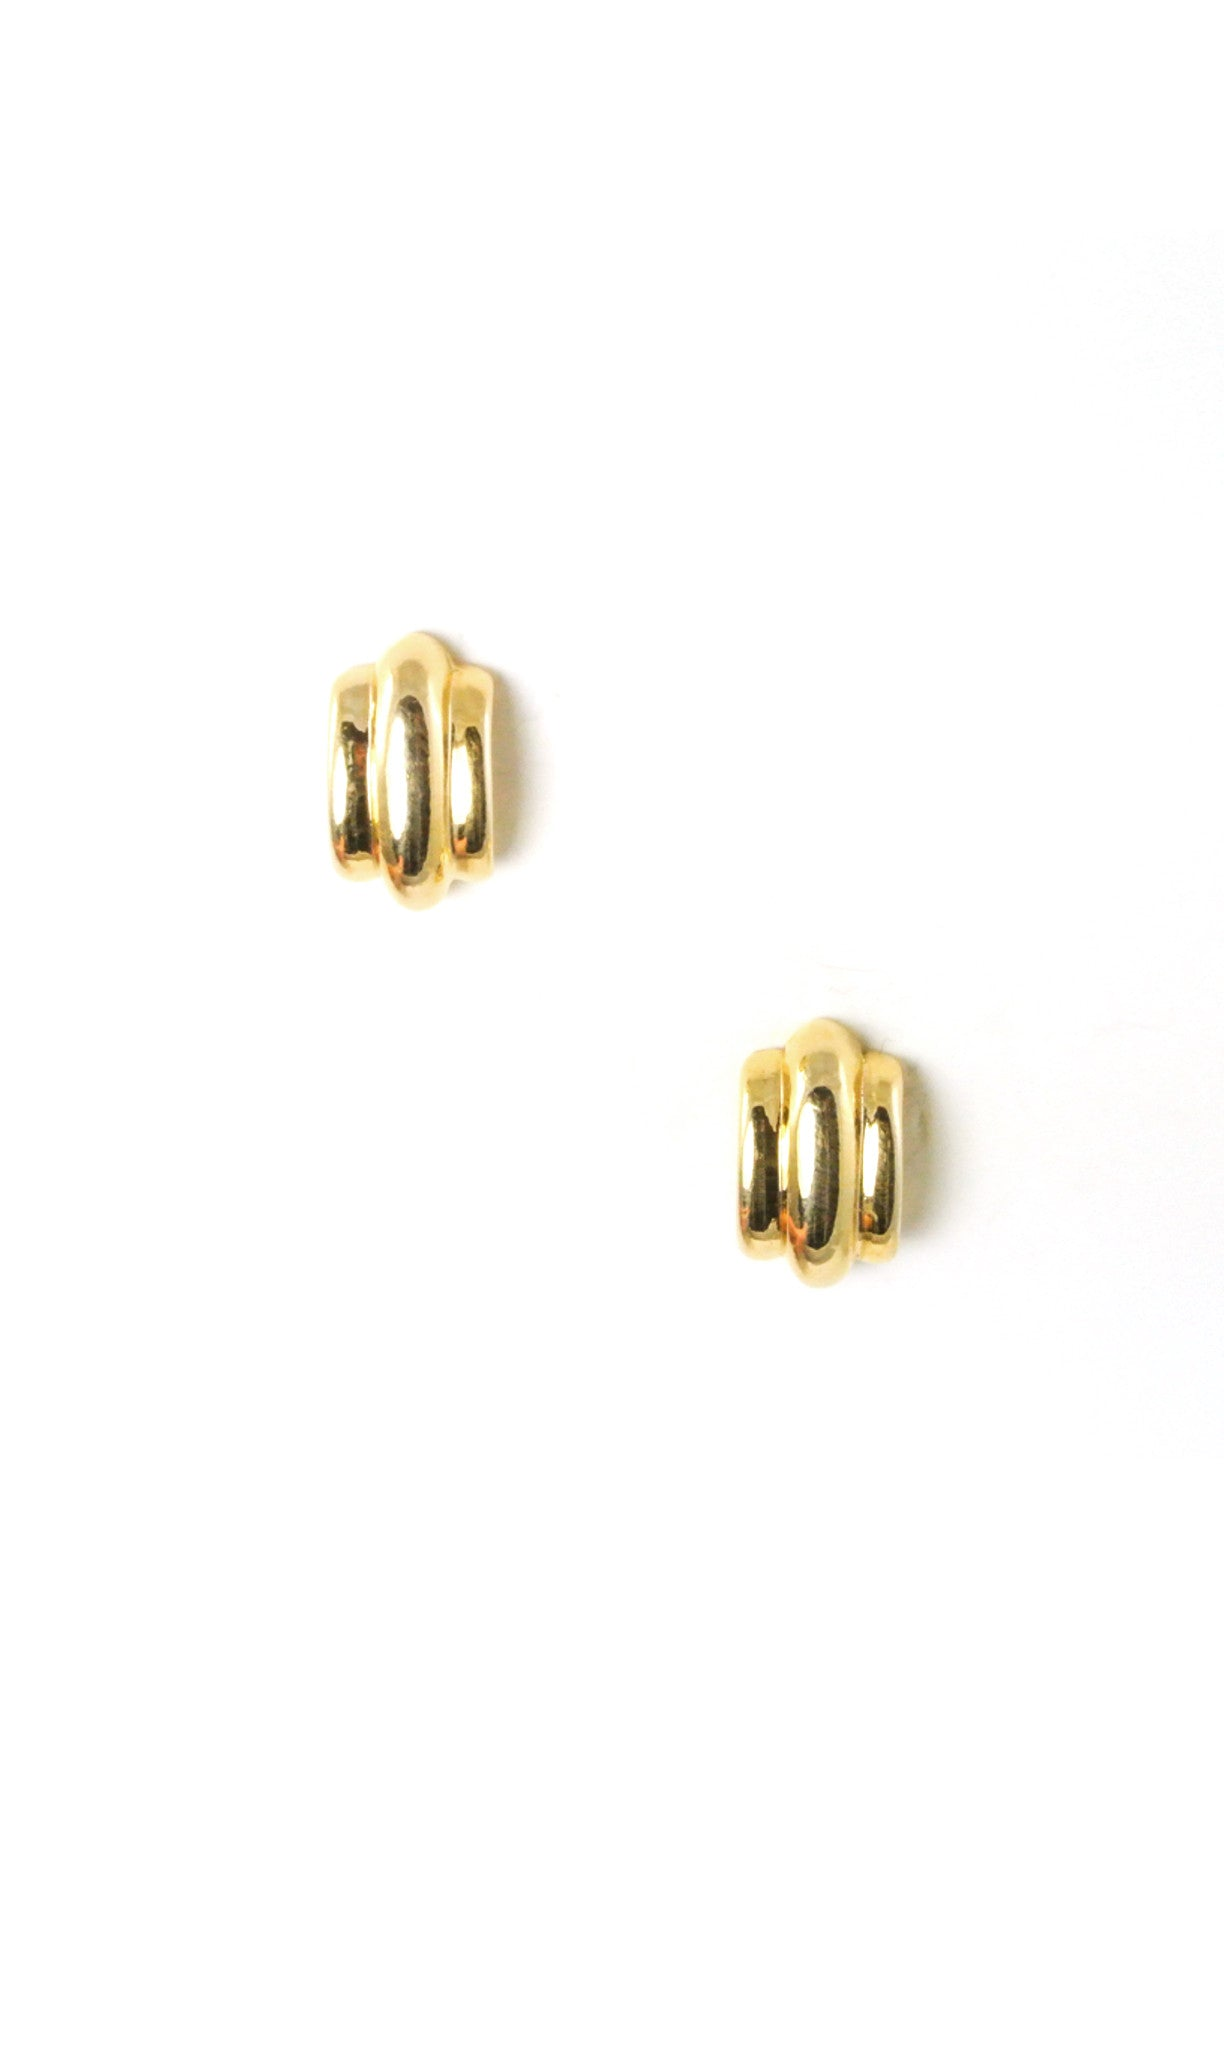 80's__Monet__Scallop Studs